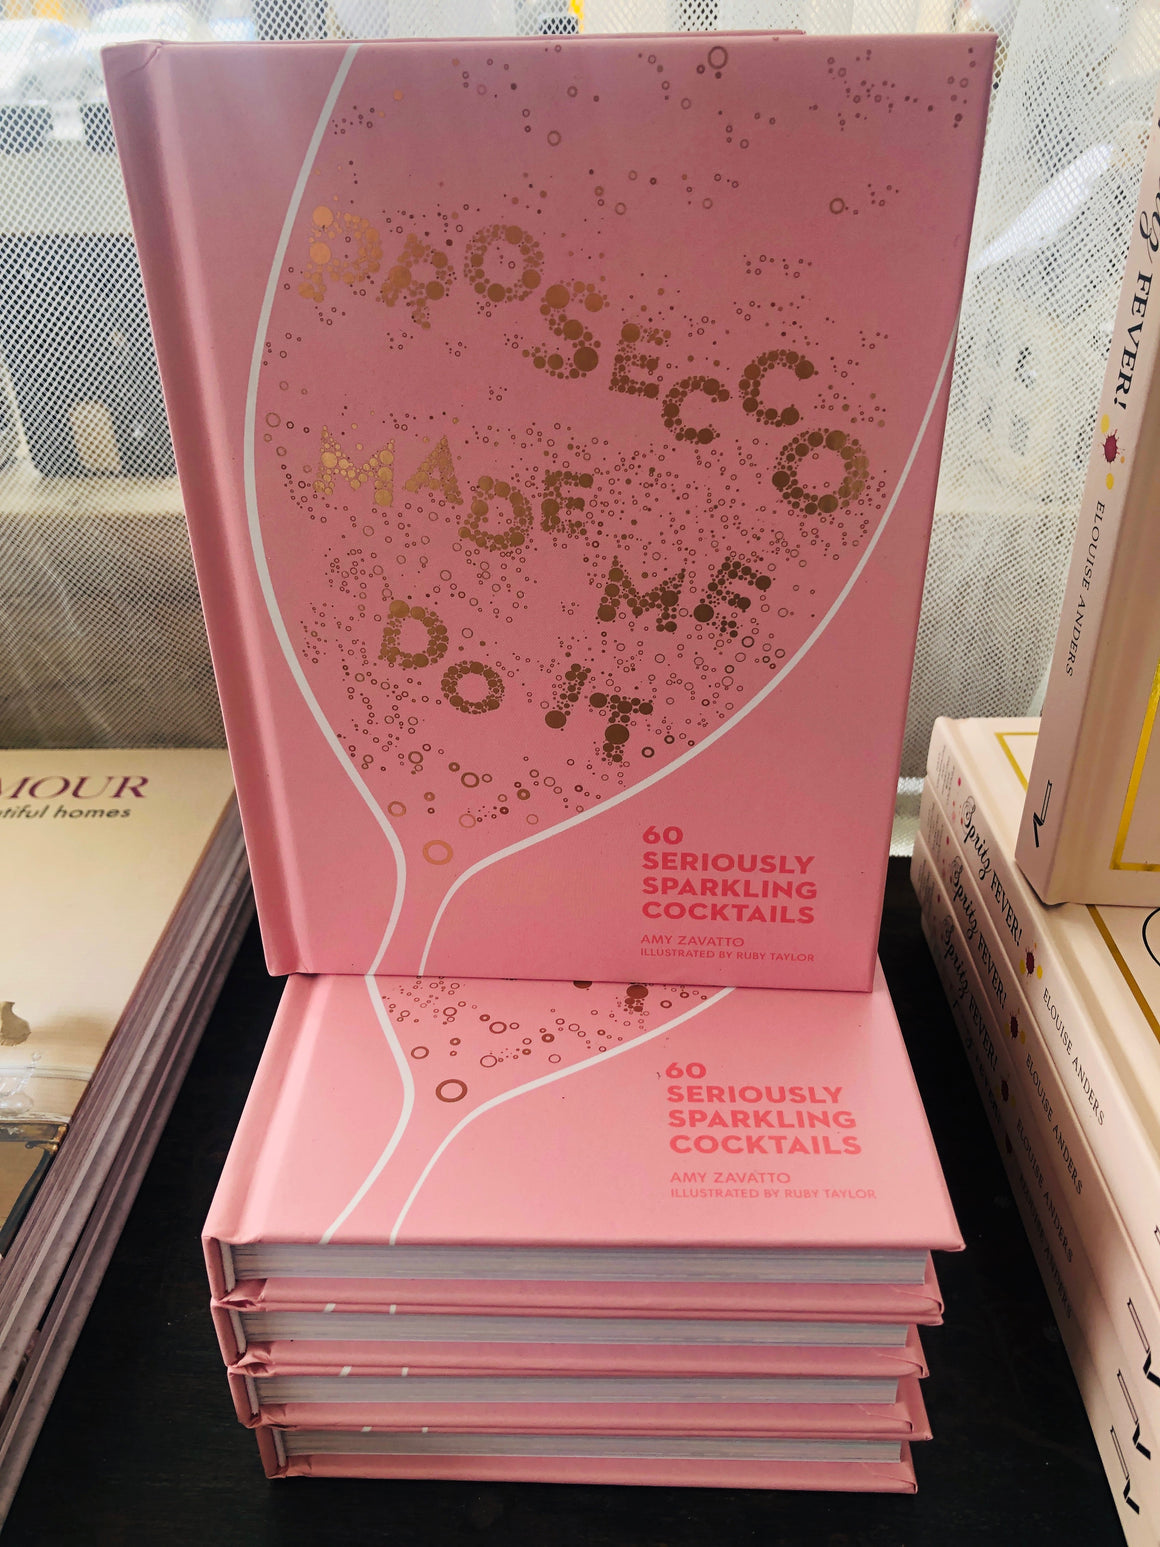 Prosecco Made me Do It - Book by Amy Zavatto